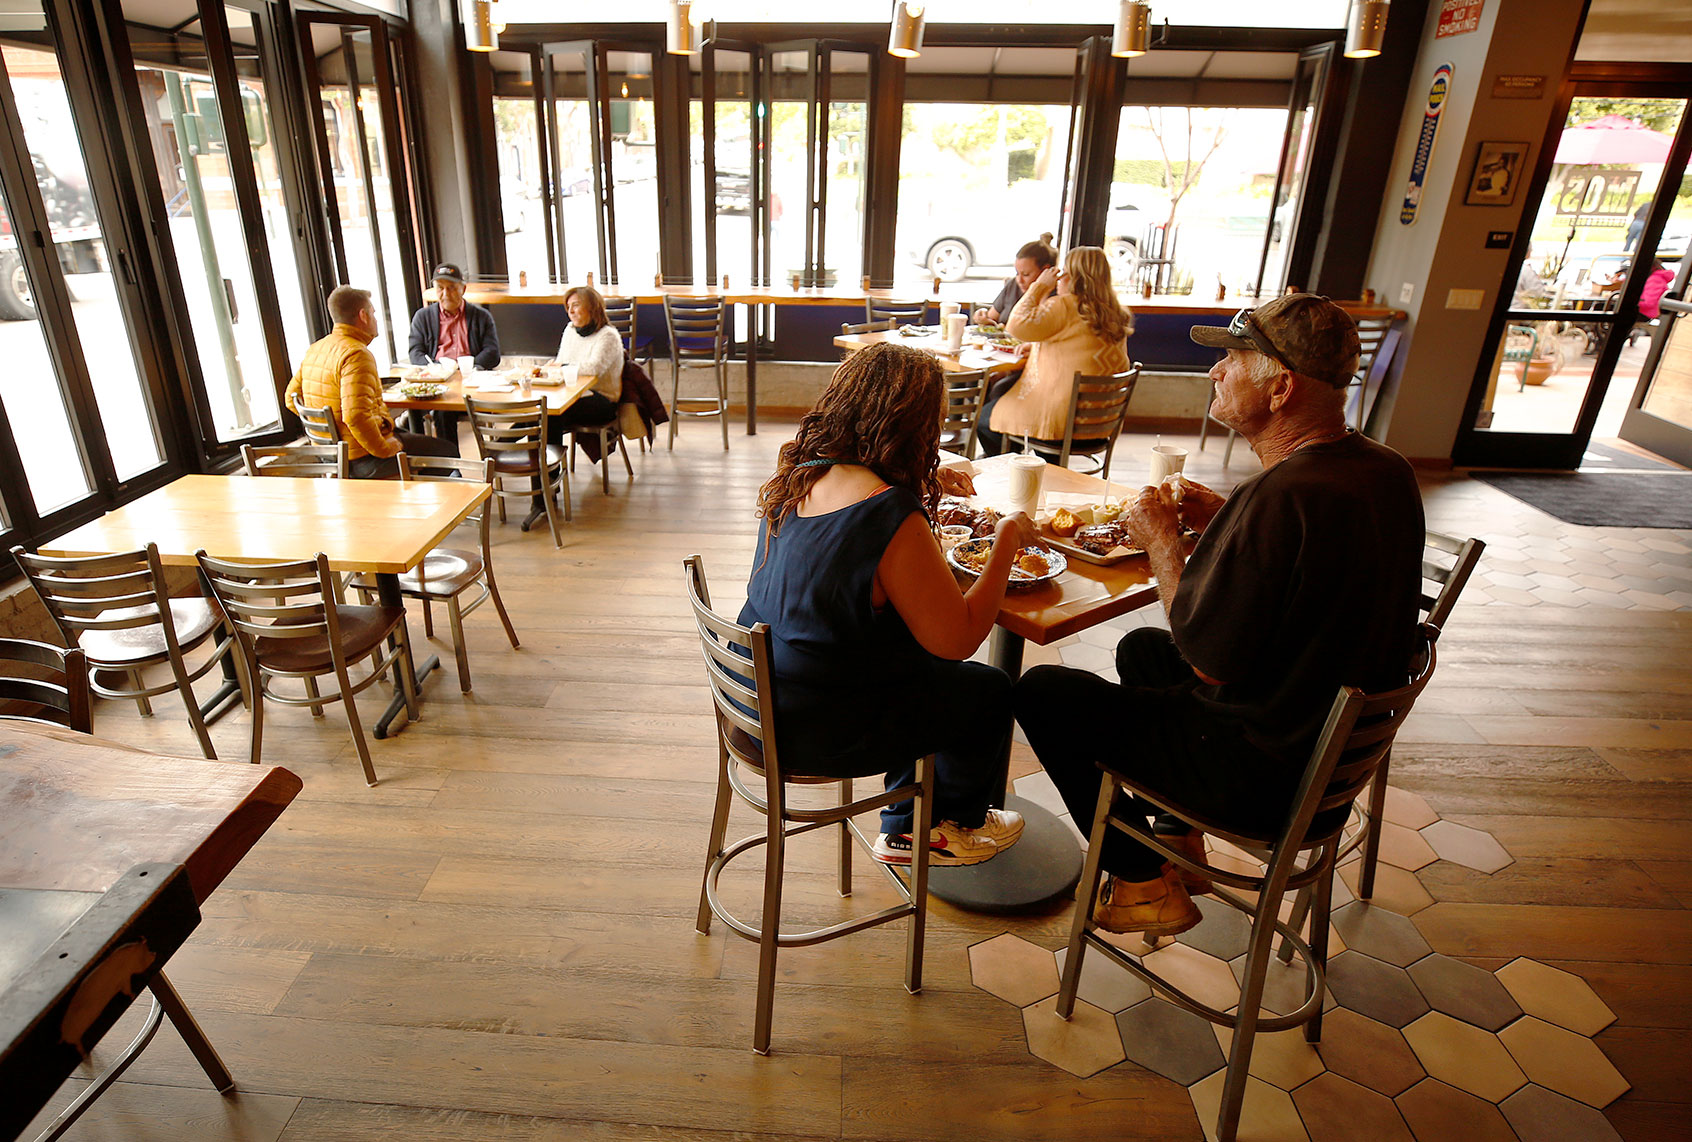 Even with precautions, indoor dining increases spread of COVID-19, CDC says - Salon